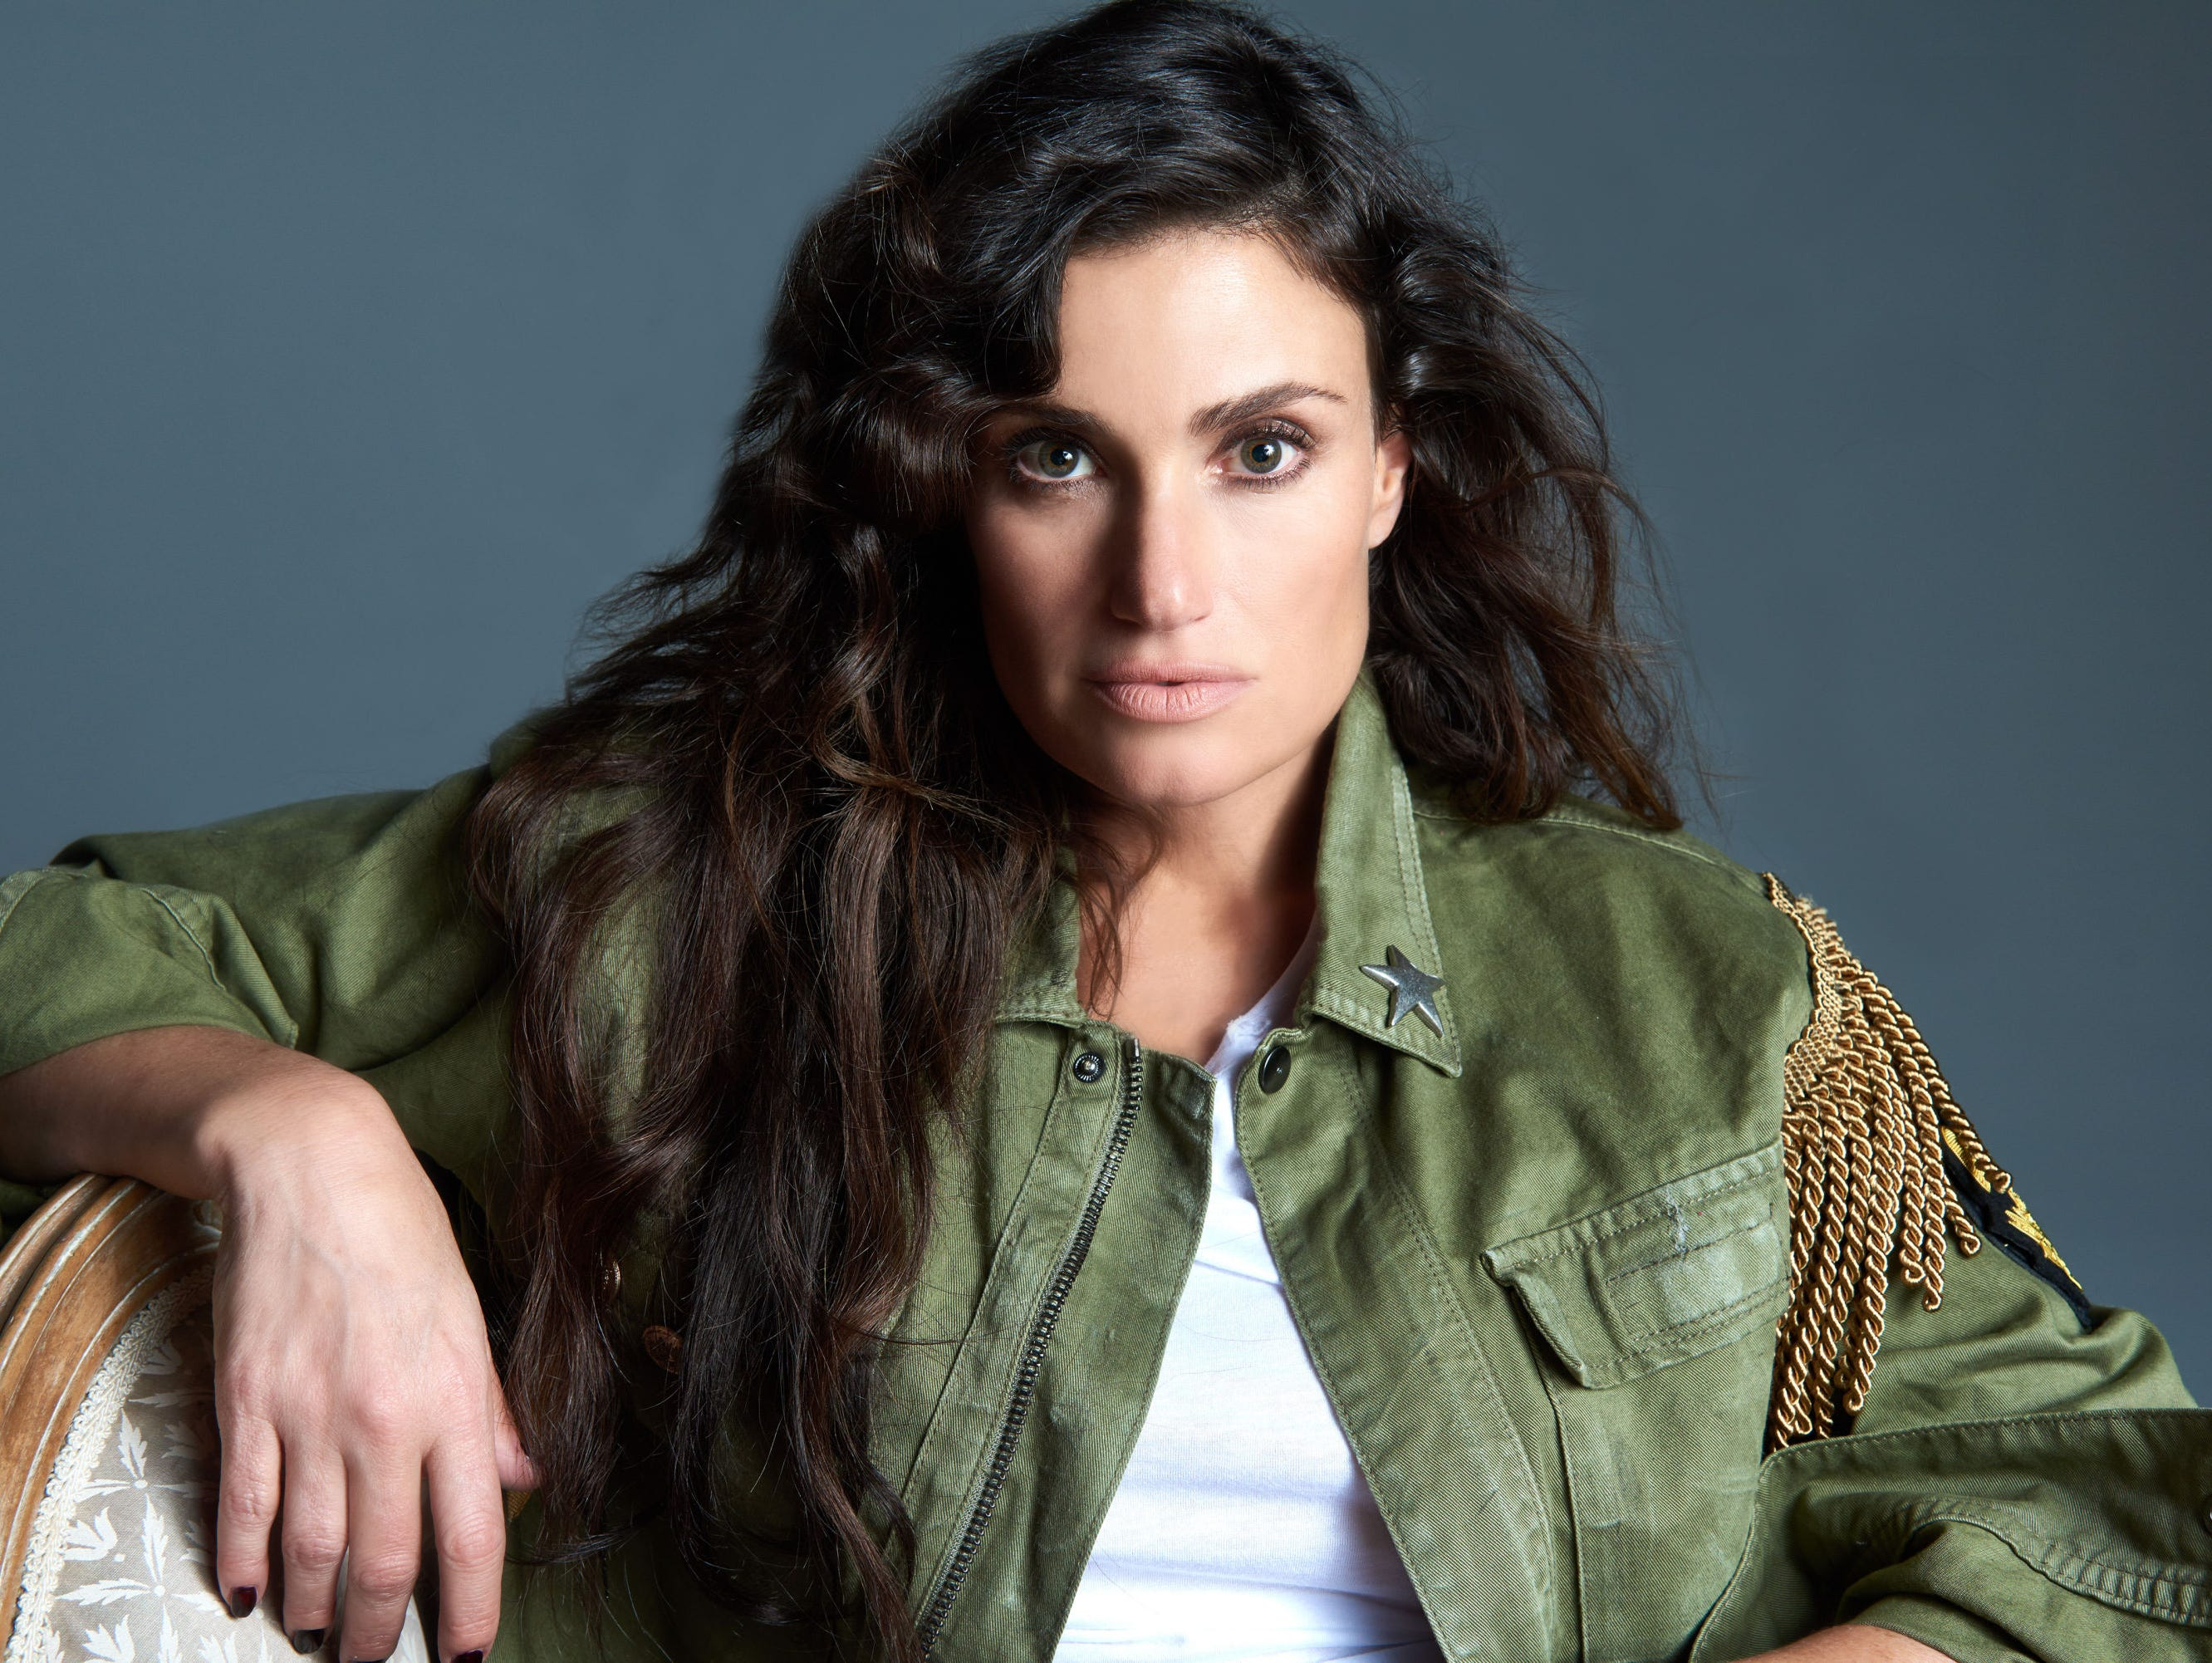 Win a pair of tickets plus meet & greet passes to the Idina Menzel show 8/6 at Louisville Palace. Enter 7/20-8/1